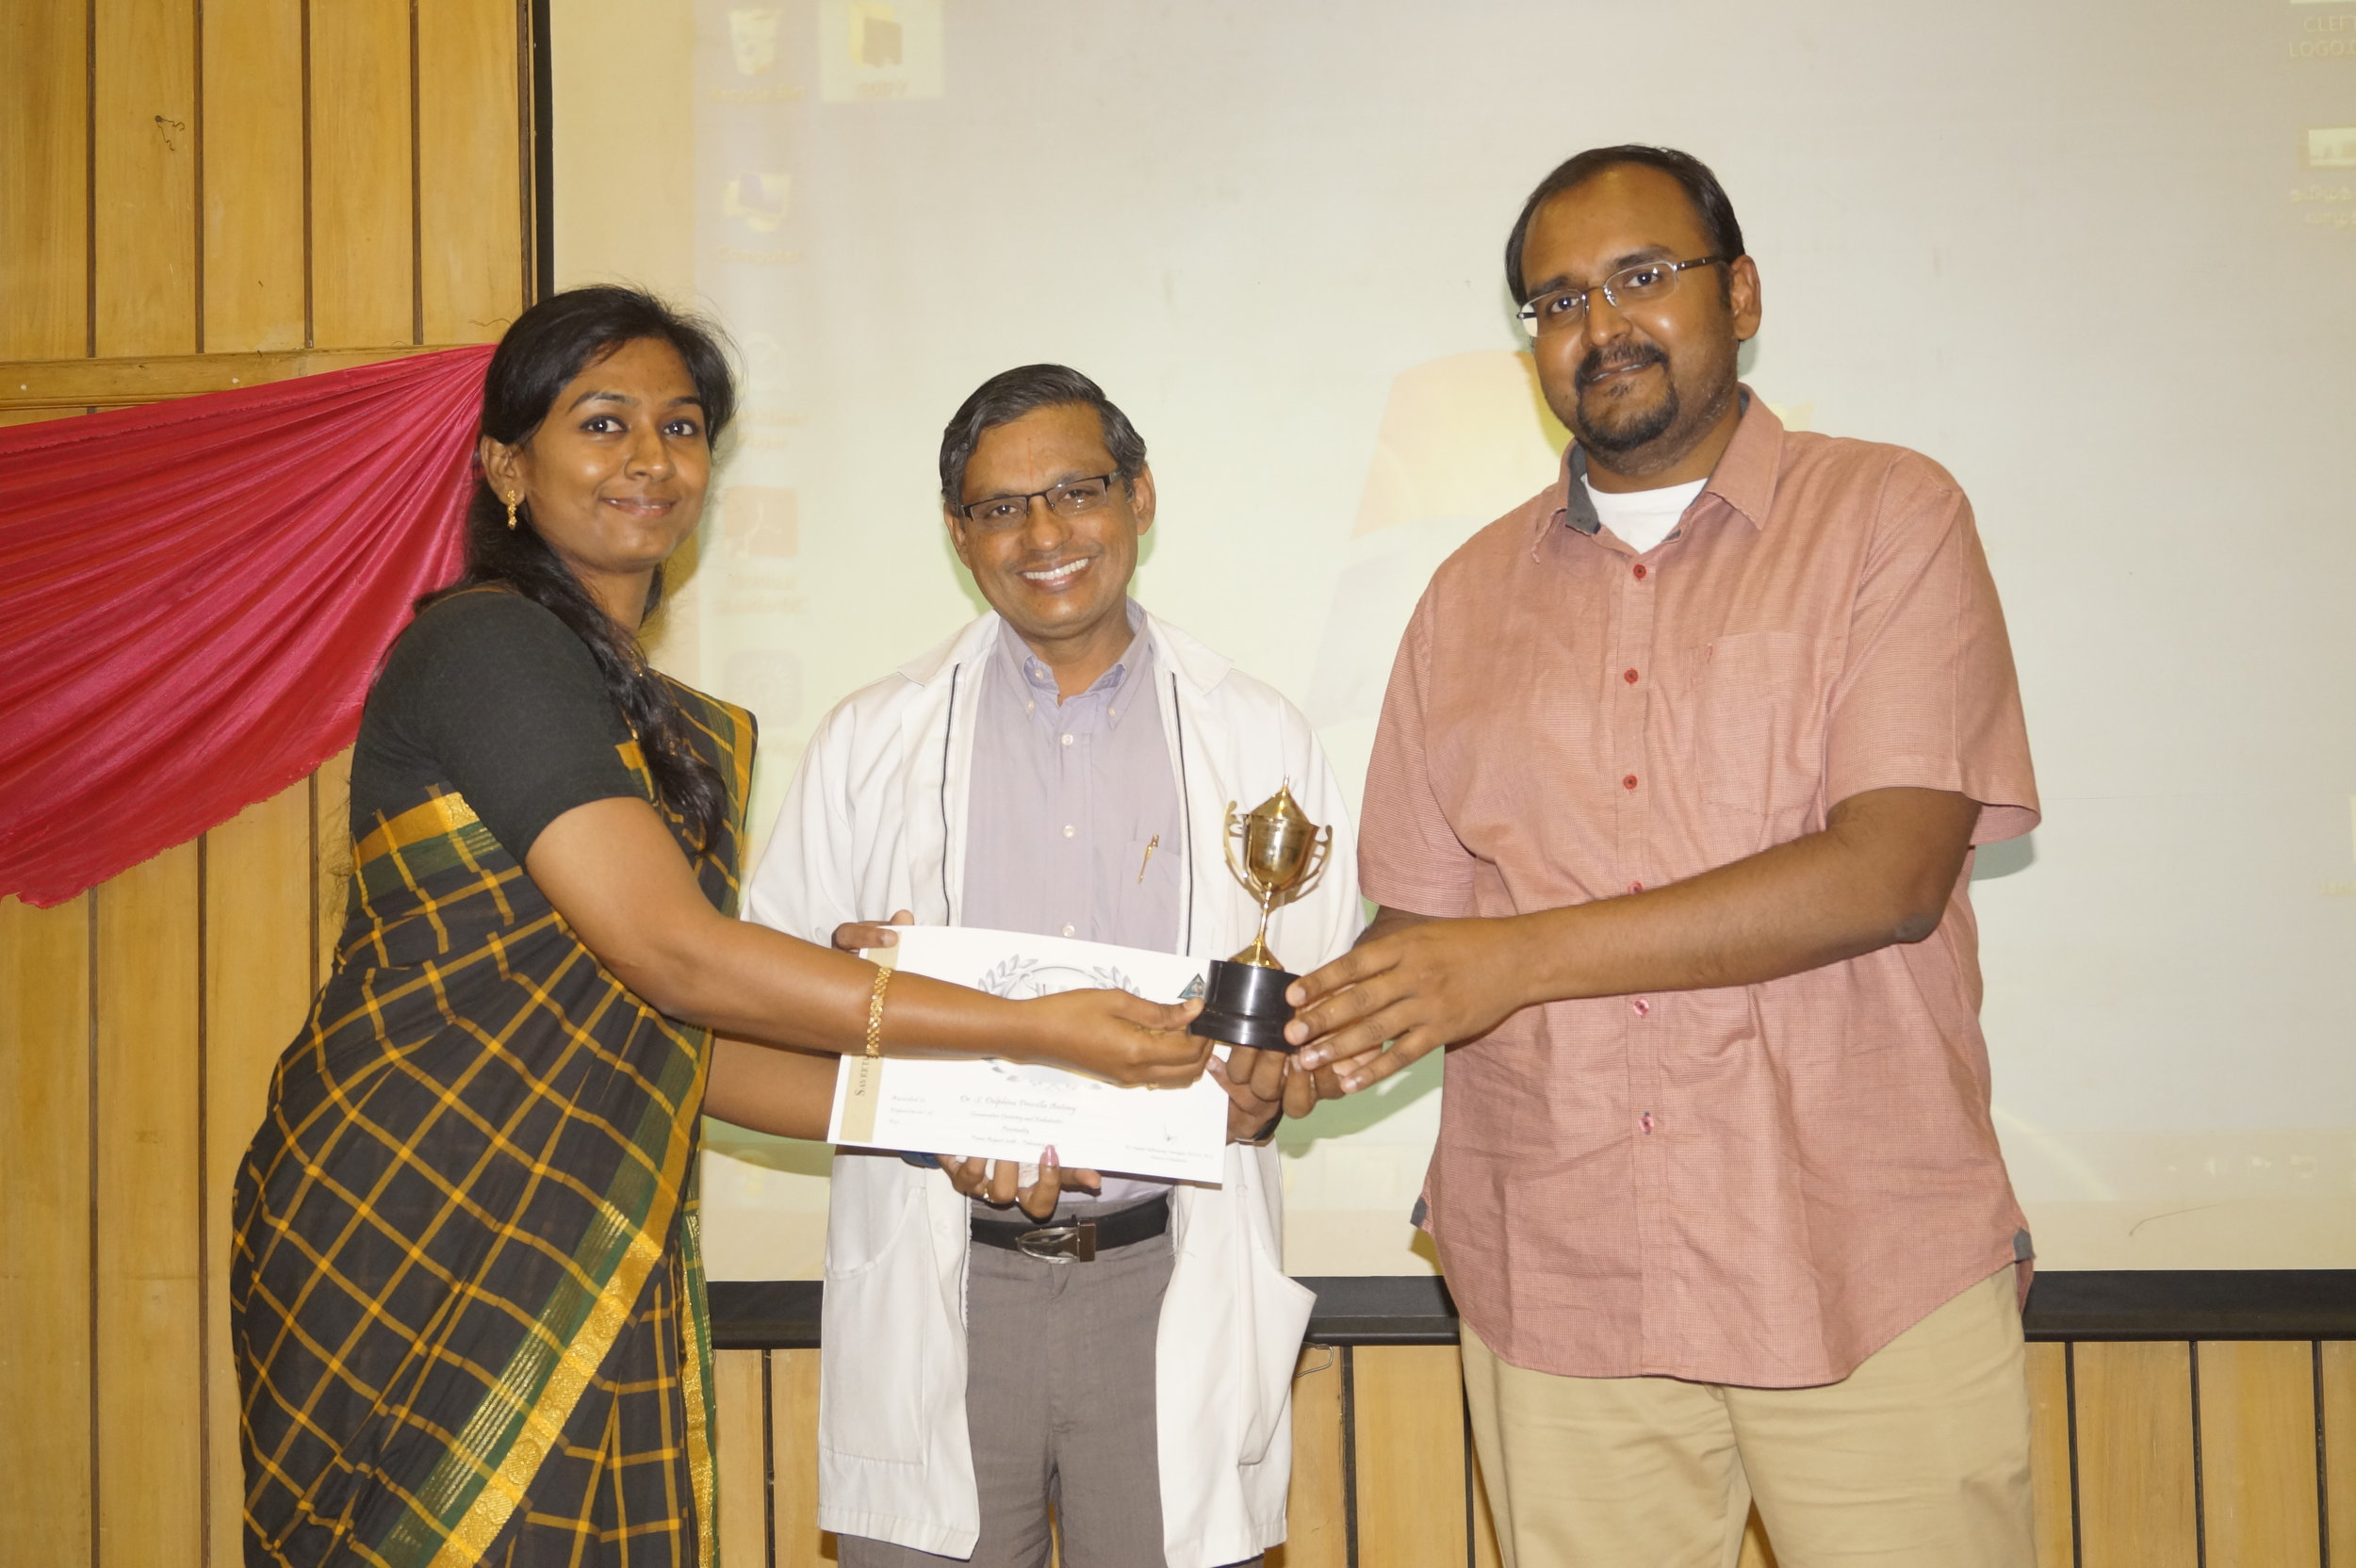 Dr. Delphine receiving Punctuality Award